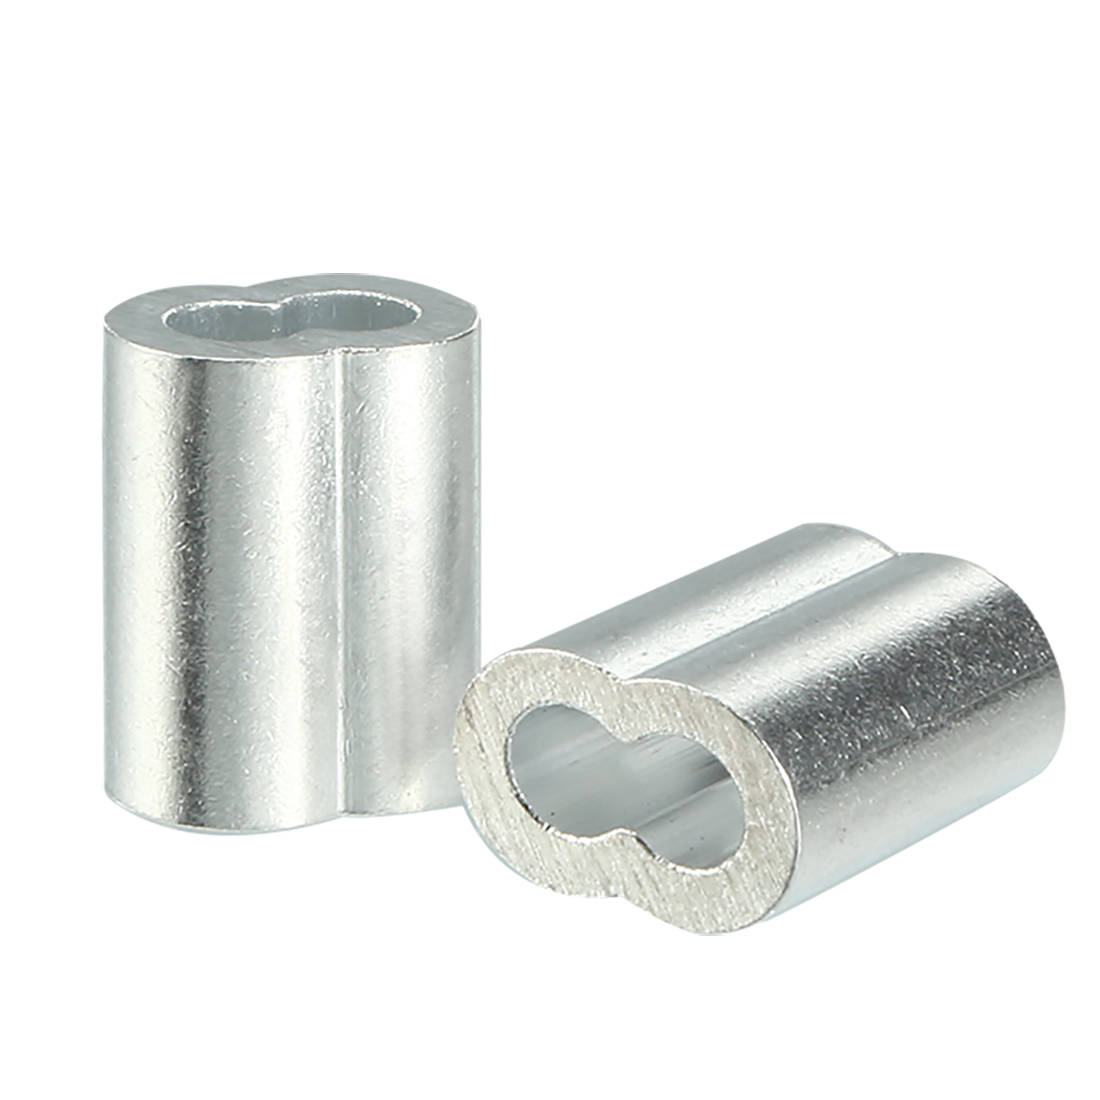 2.5mm Cable Wire Rope Aluminum Sleeves Clip Crimping Loop 100pcs